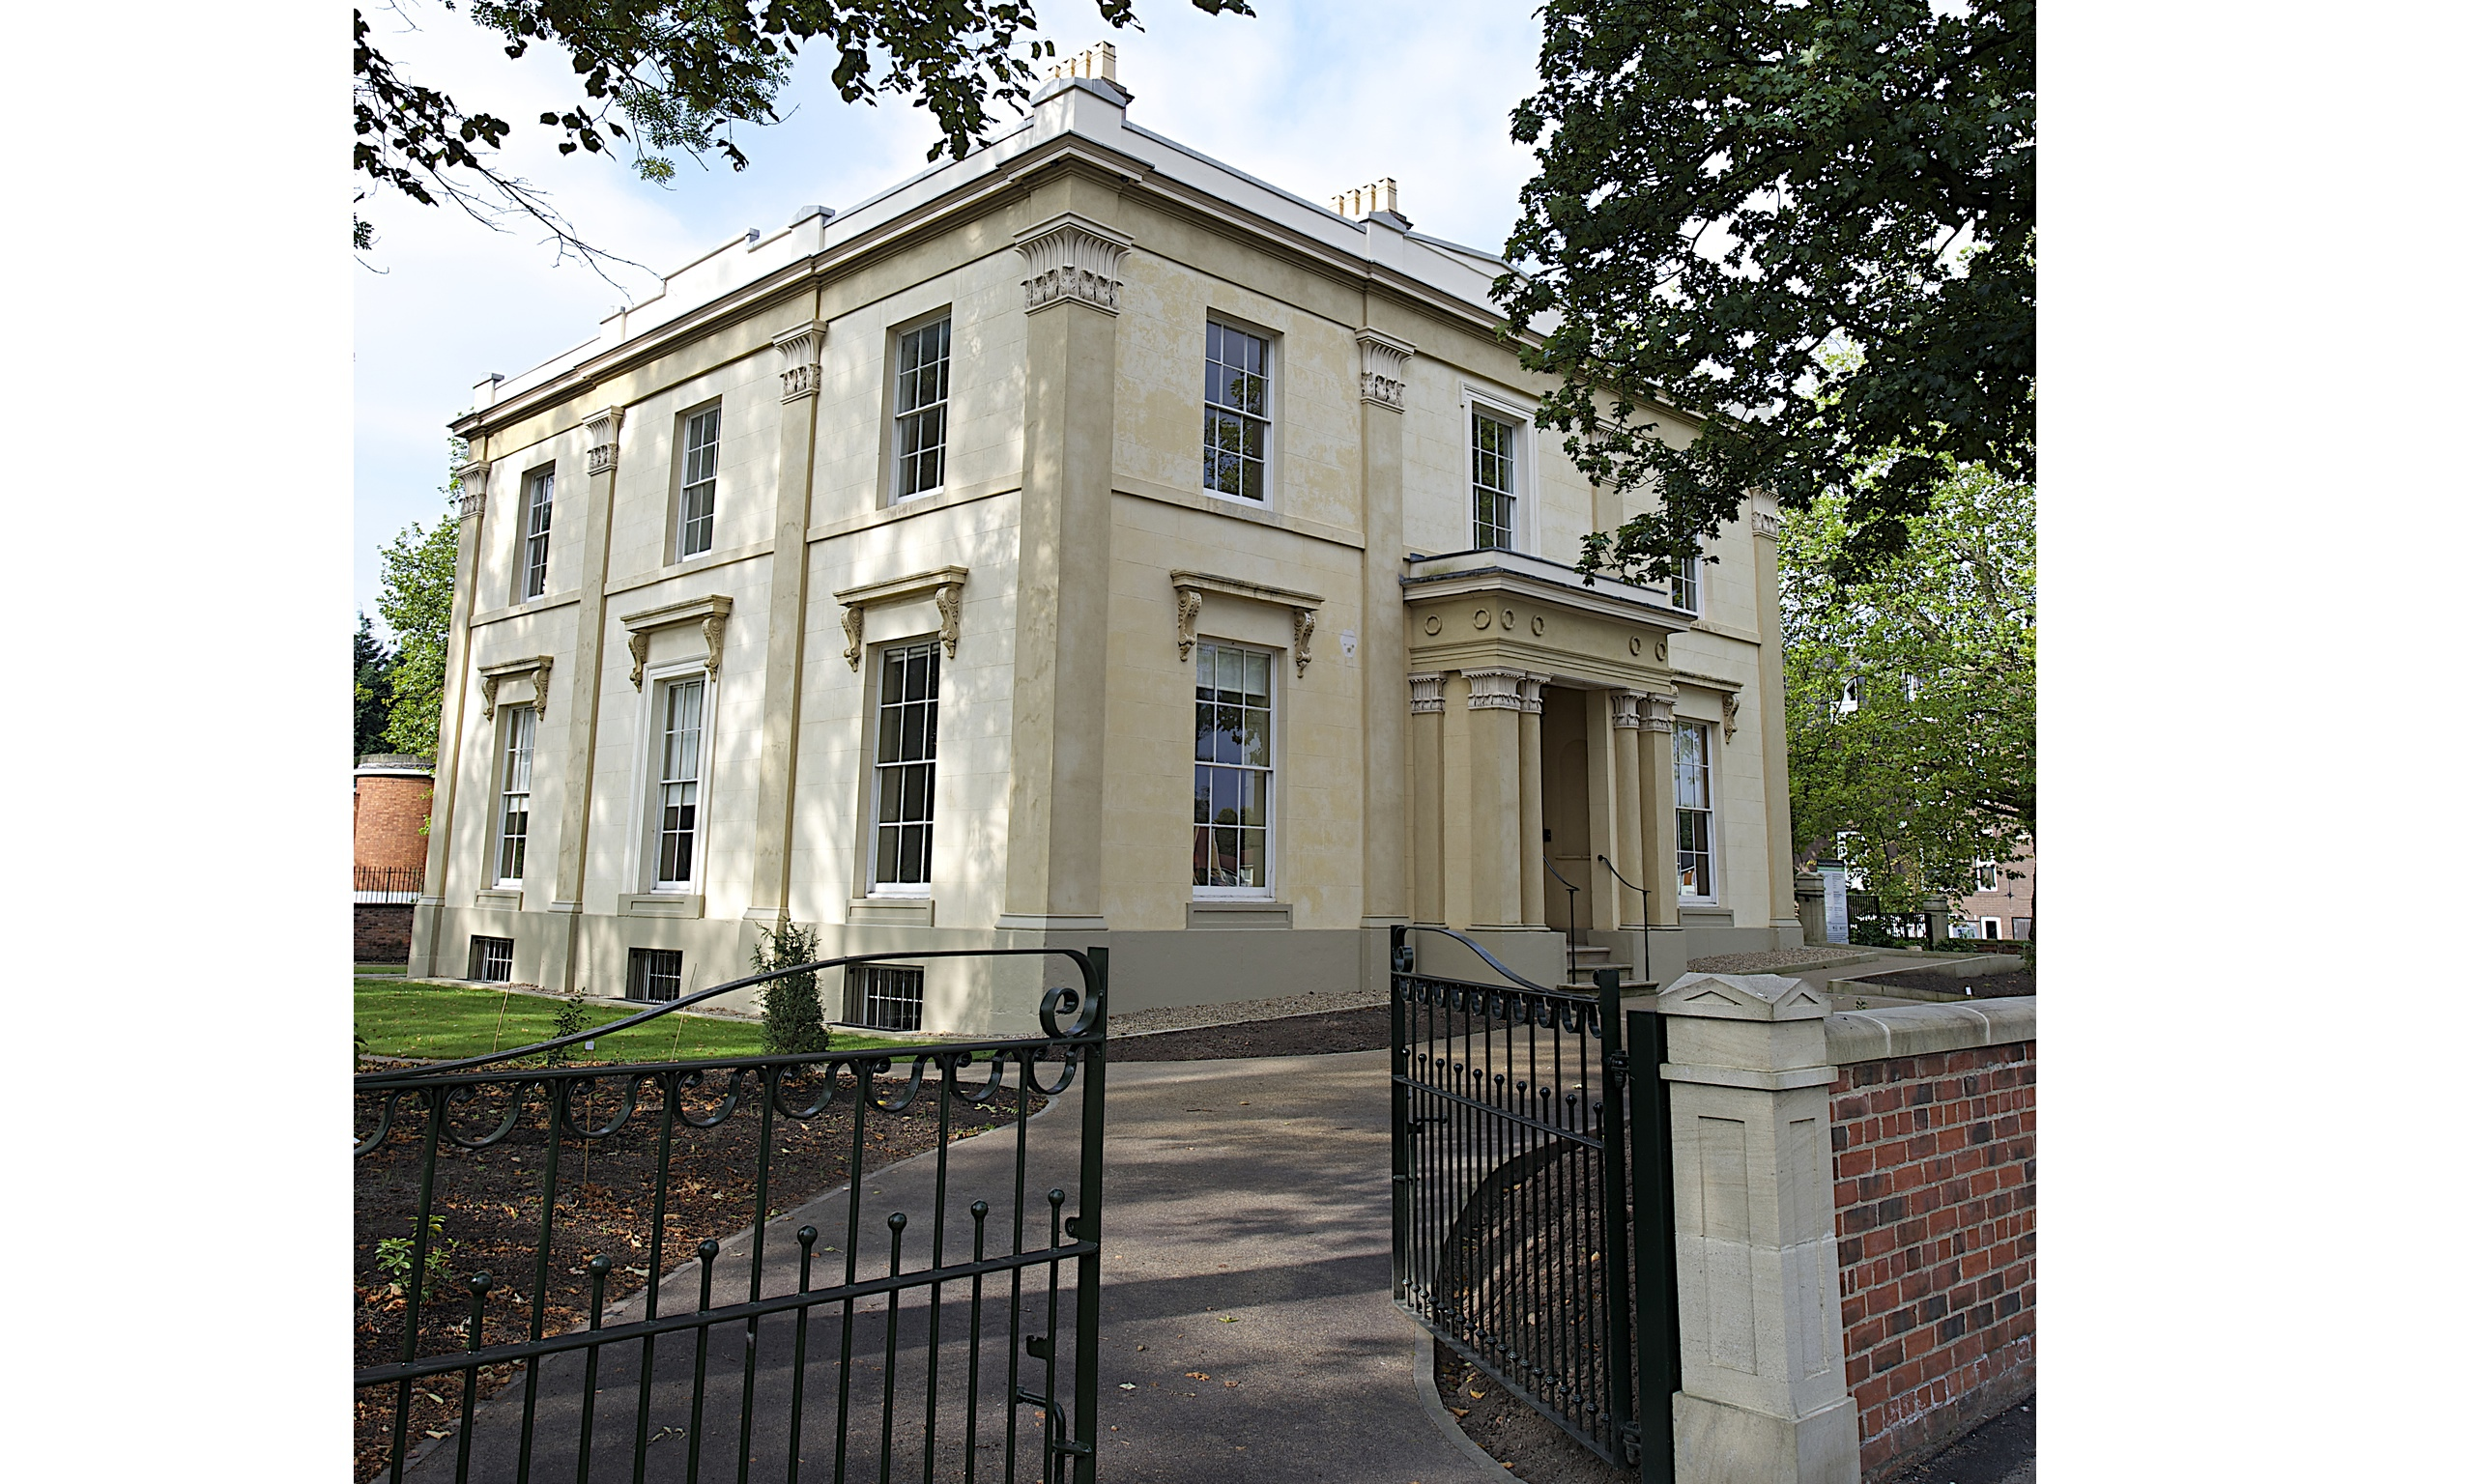 Elizabeth gaskell s rare victorian villa reopens after 2 for Pictures for the house